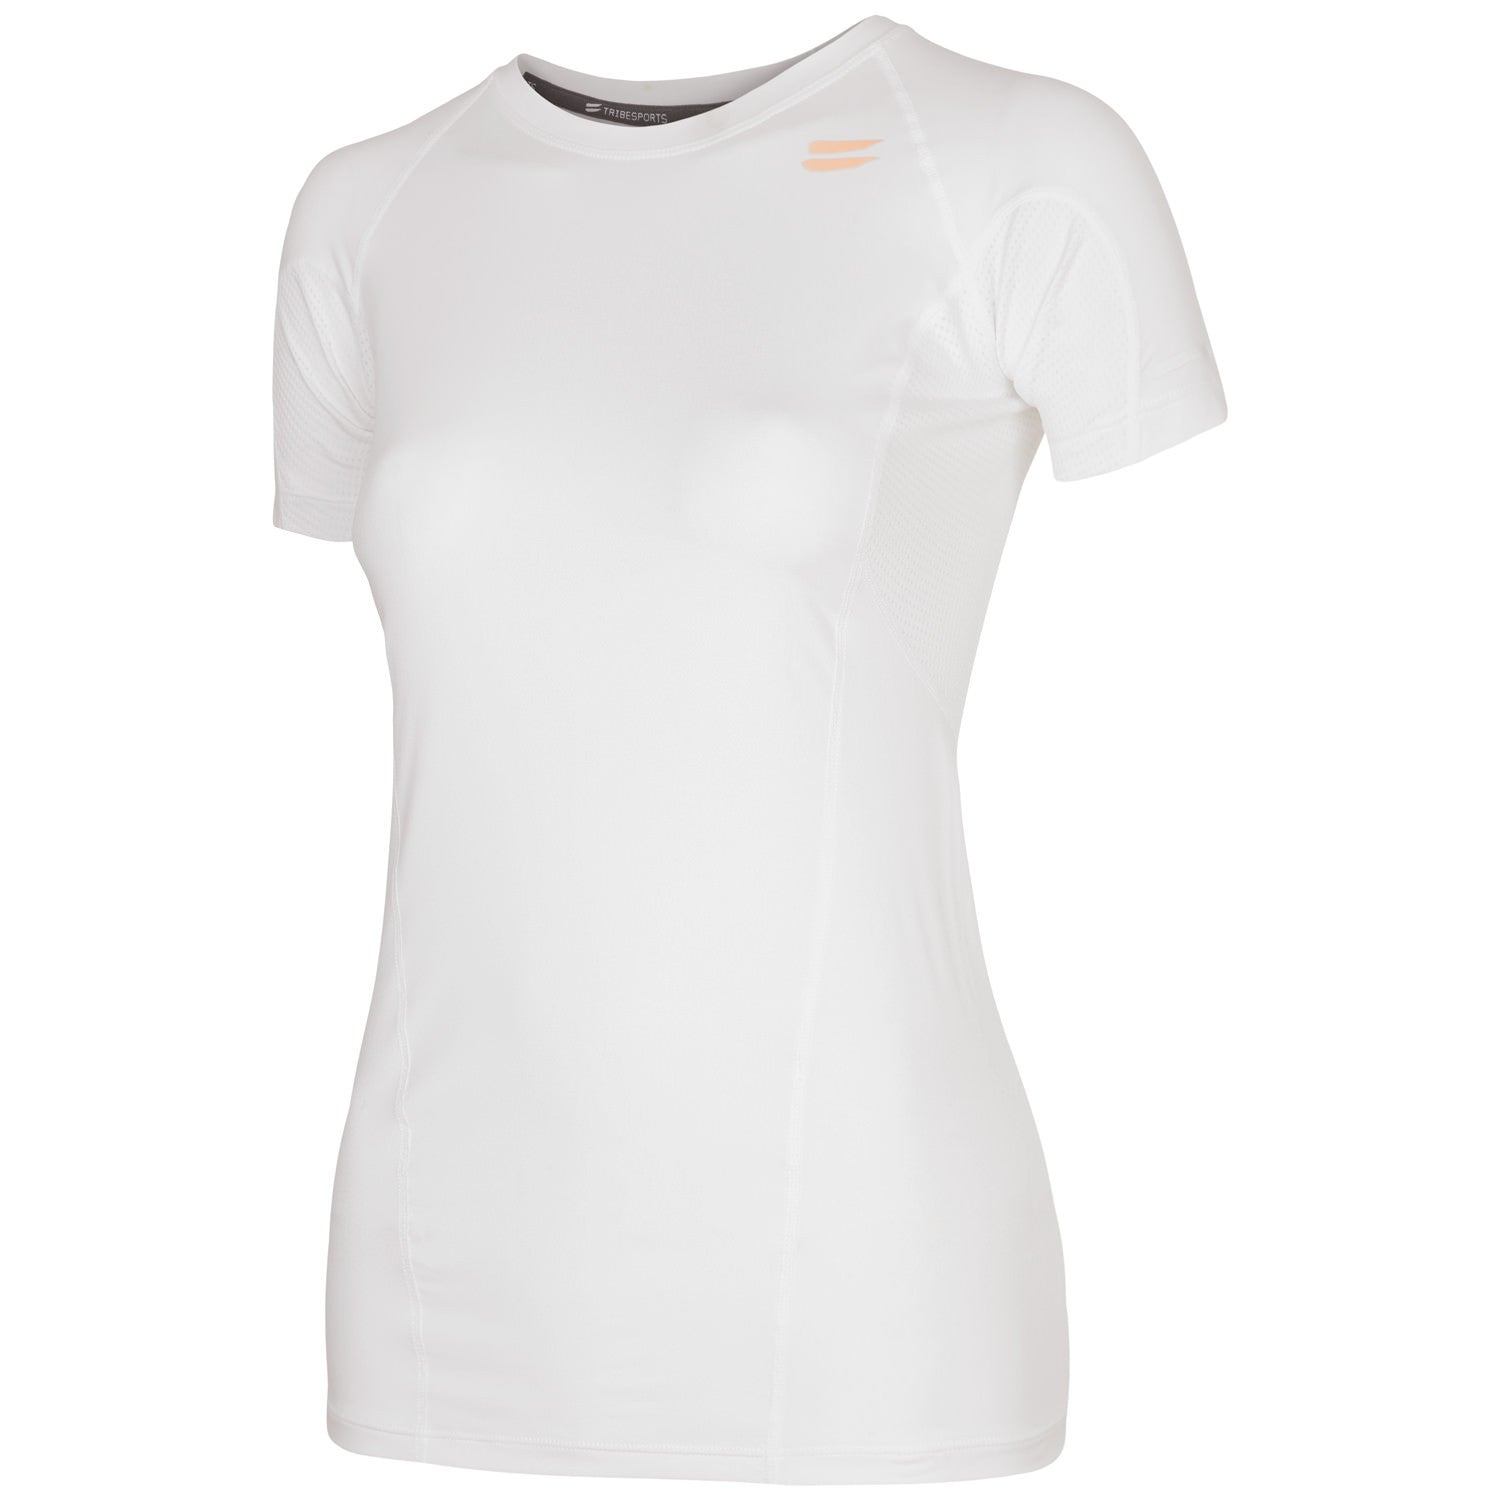 Women's Core Short Sleeve Running Top